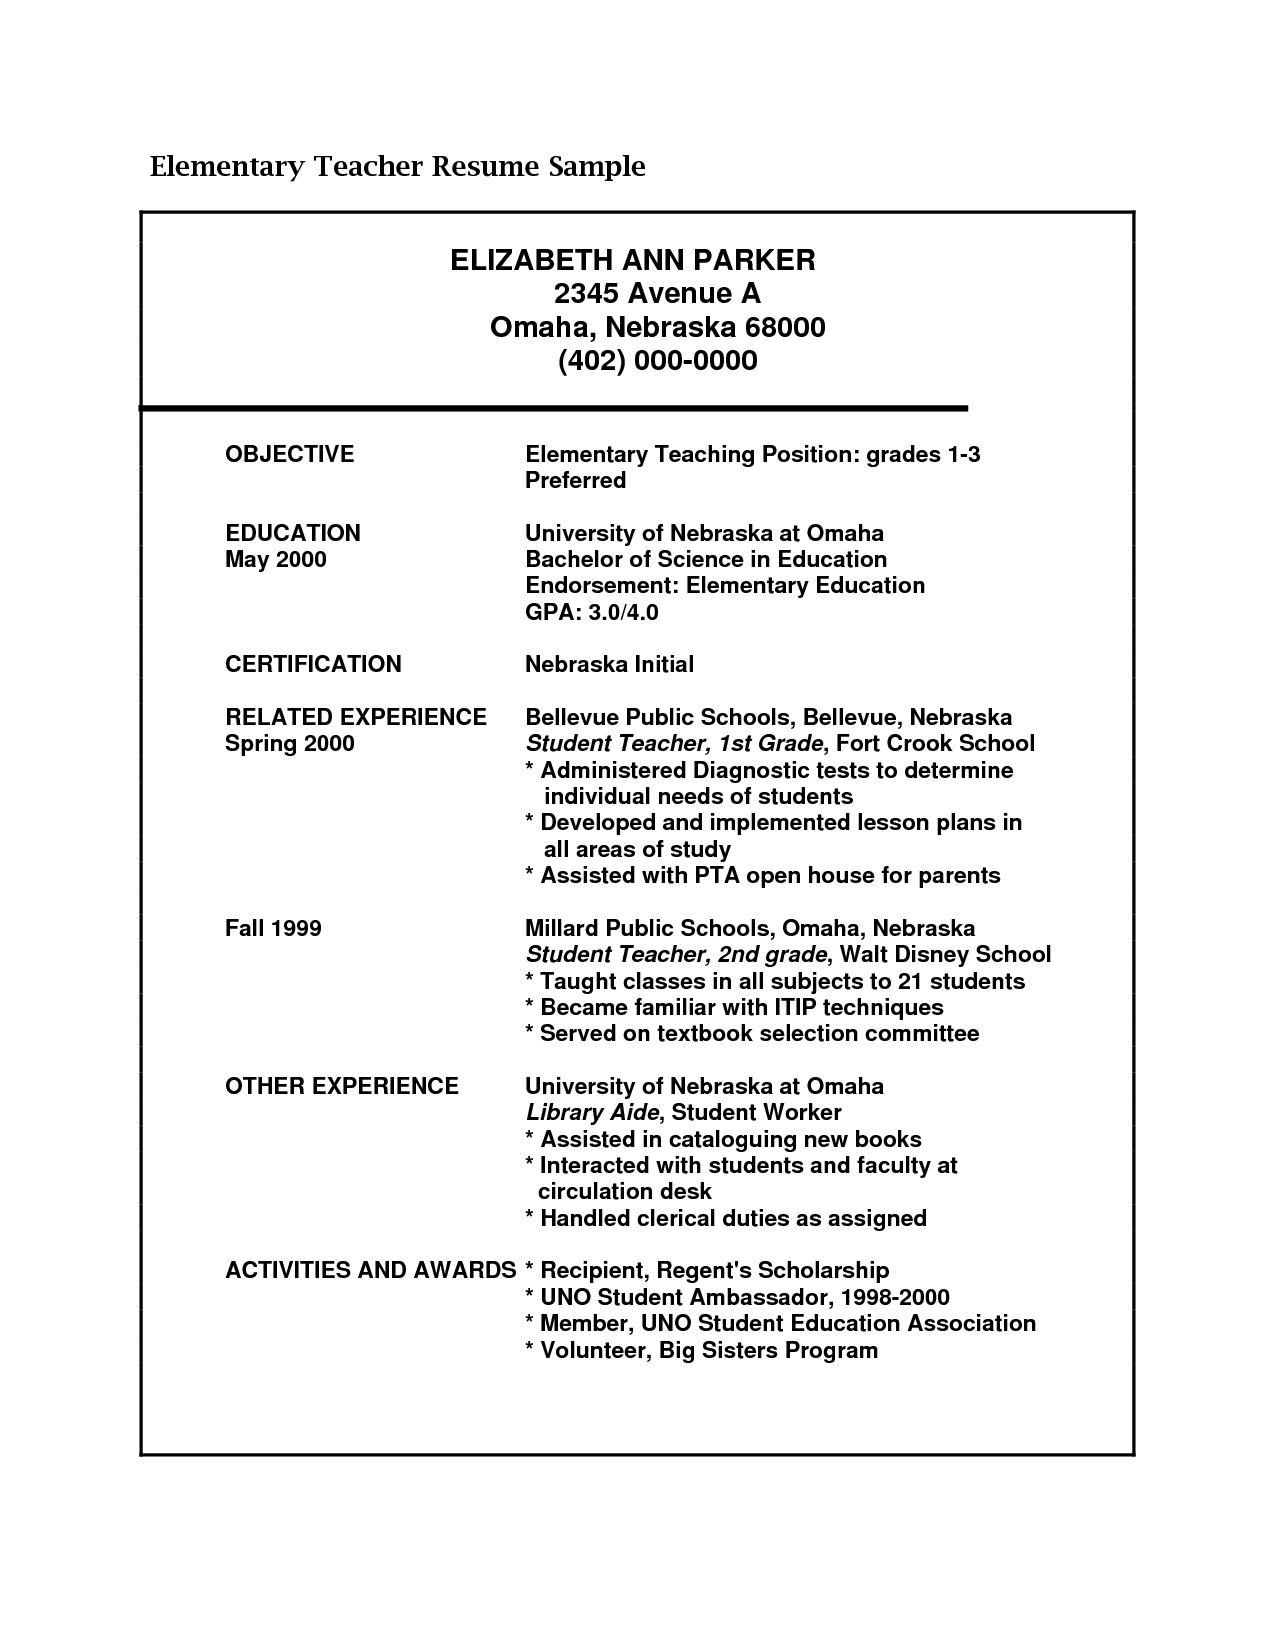 50a70ea95e30f5e2f1c2504434bdd0e9 Objectives On Bioinformatics Scientist Resume on